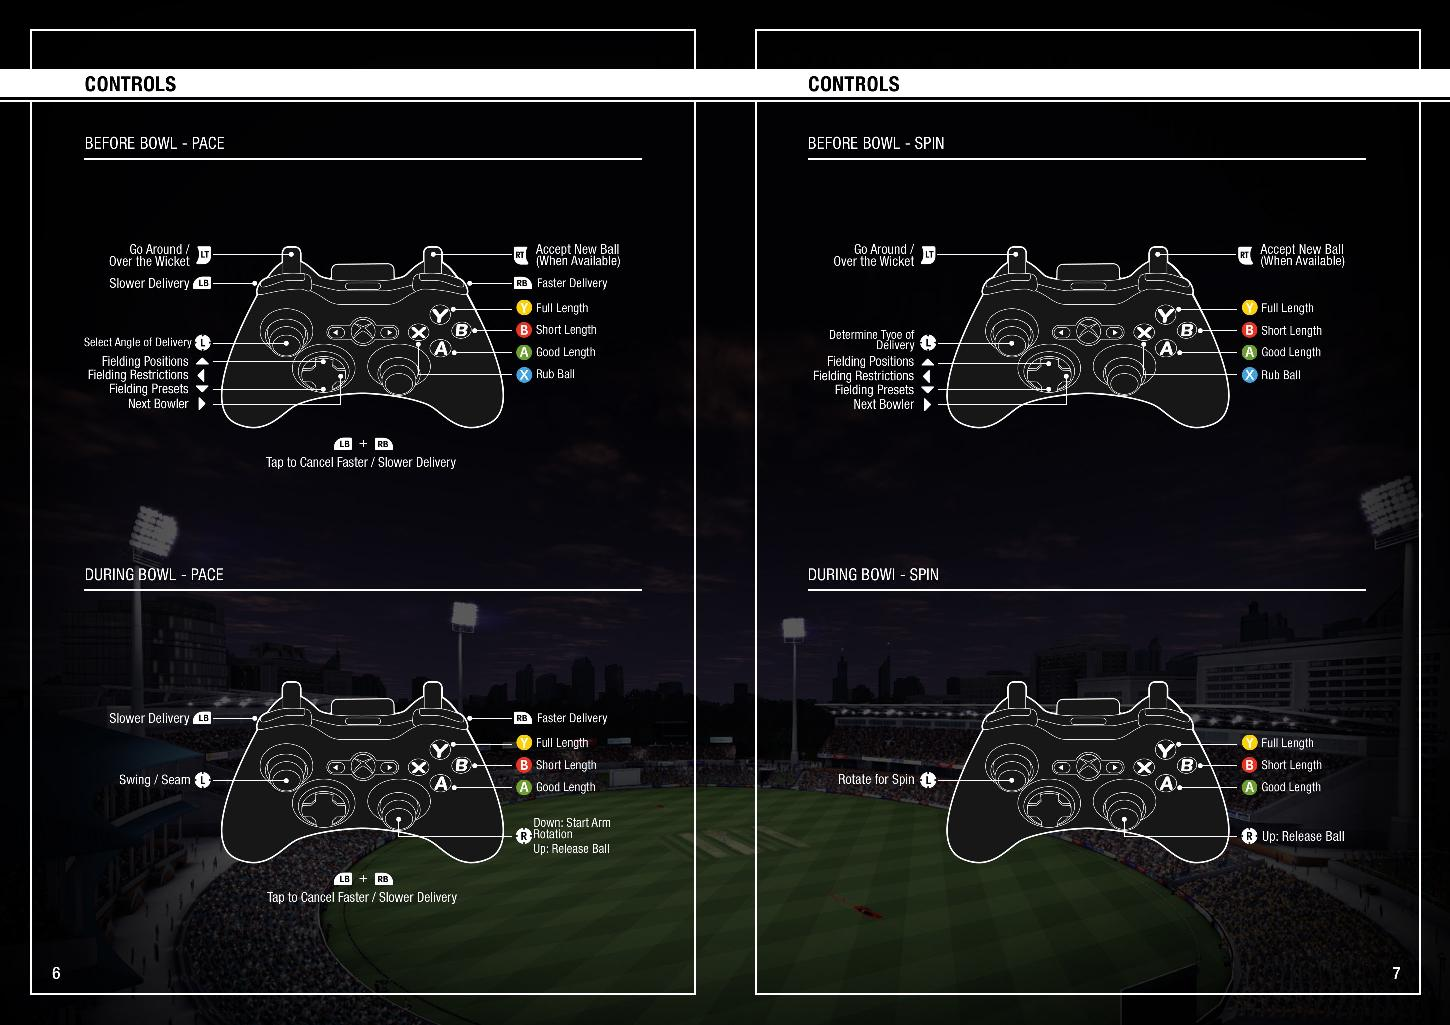 Cricket 07 [pc] basic tips and tricks | gamehag.